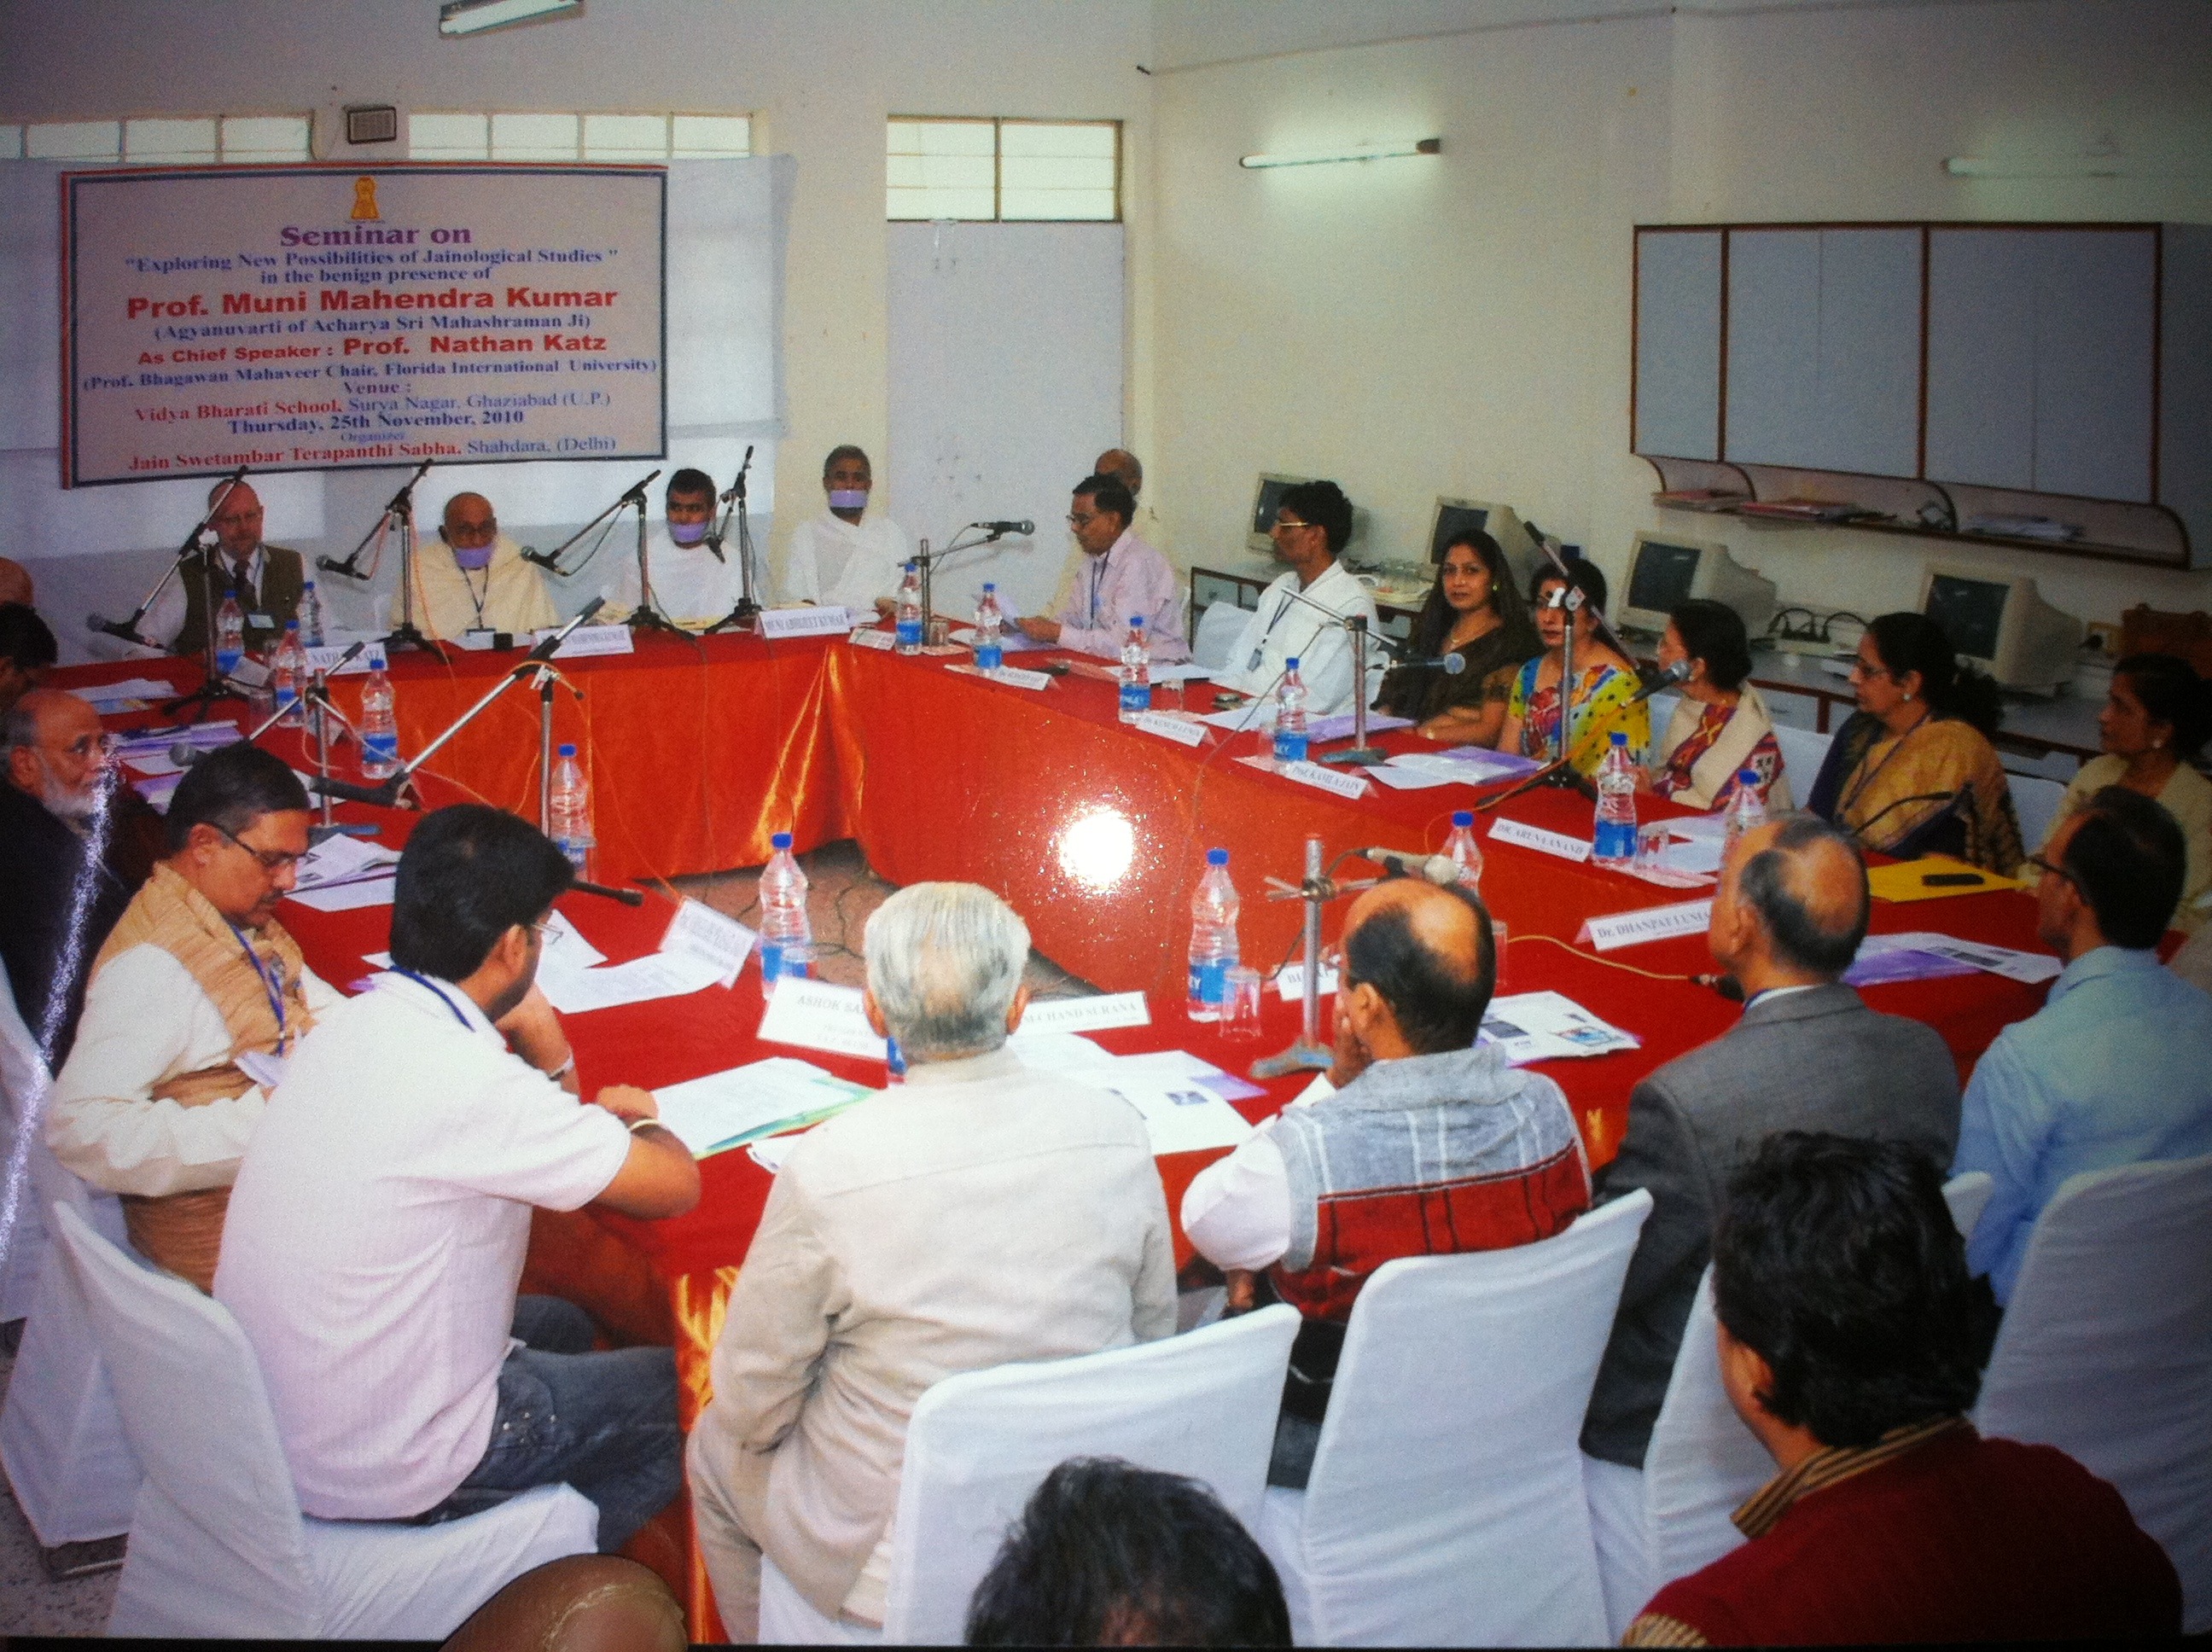 http://www.herenow4u.net/fileadmin/v3media/pics/organisations/Jain_Education_and_Research_Foundation/2010-11_Dr._Nathan_Katz_Visits_India/2010-11-25_Delhi_-_Seminar_and_Meeting_with_Prof._Muni_Mahendra_Kumar01.JPG